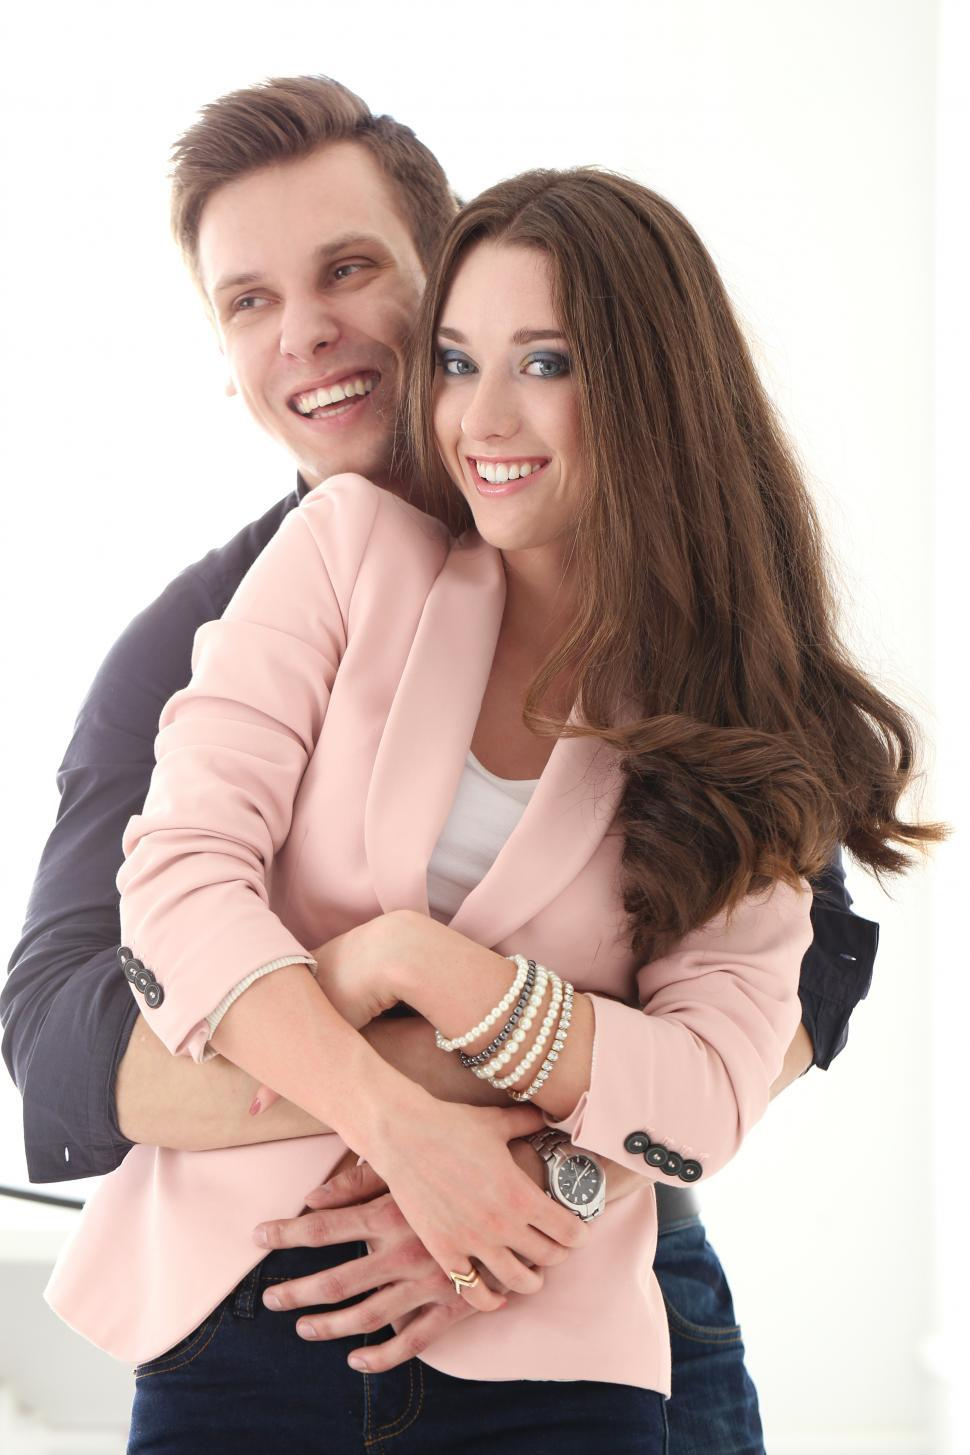 Download Free Stock Photo of Beautiful couple, happy together